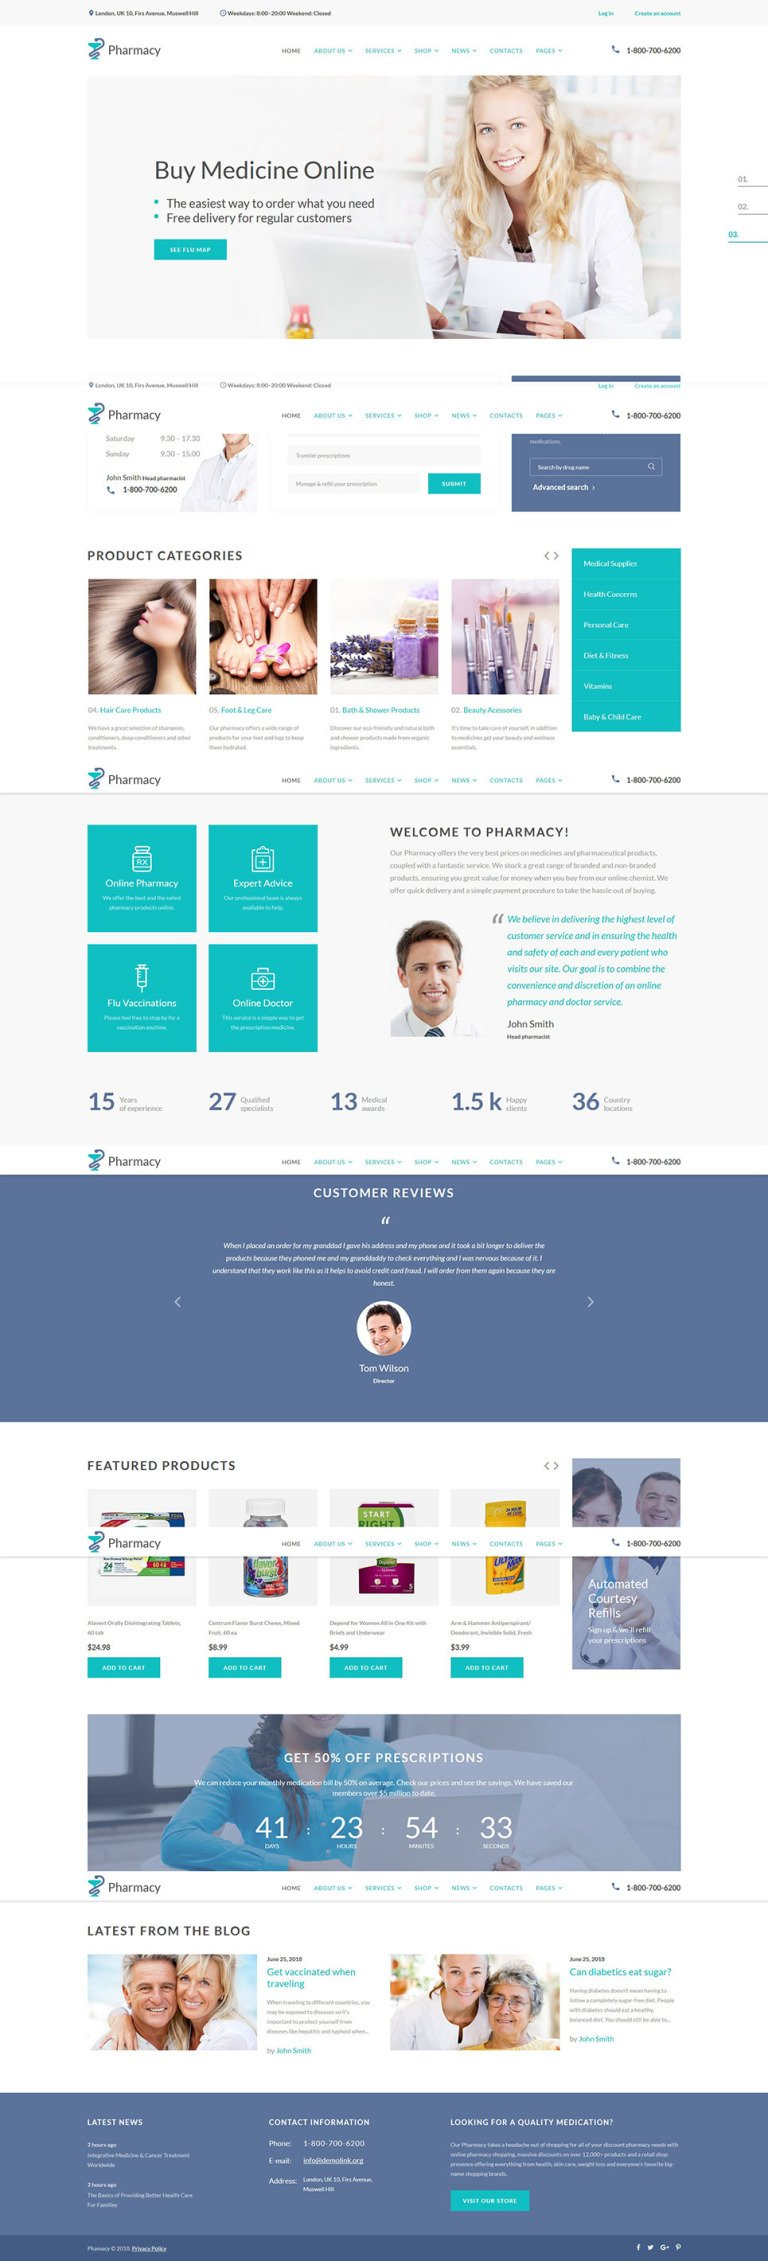 Pharmacy Website Template New Screenshots BIG